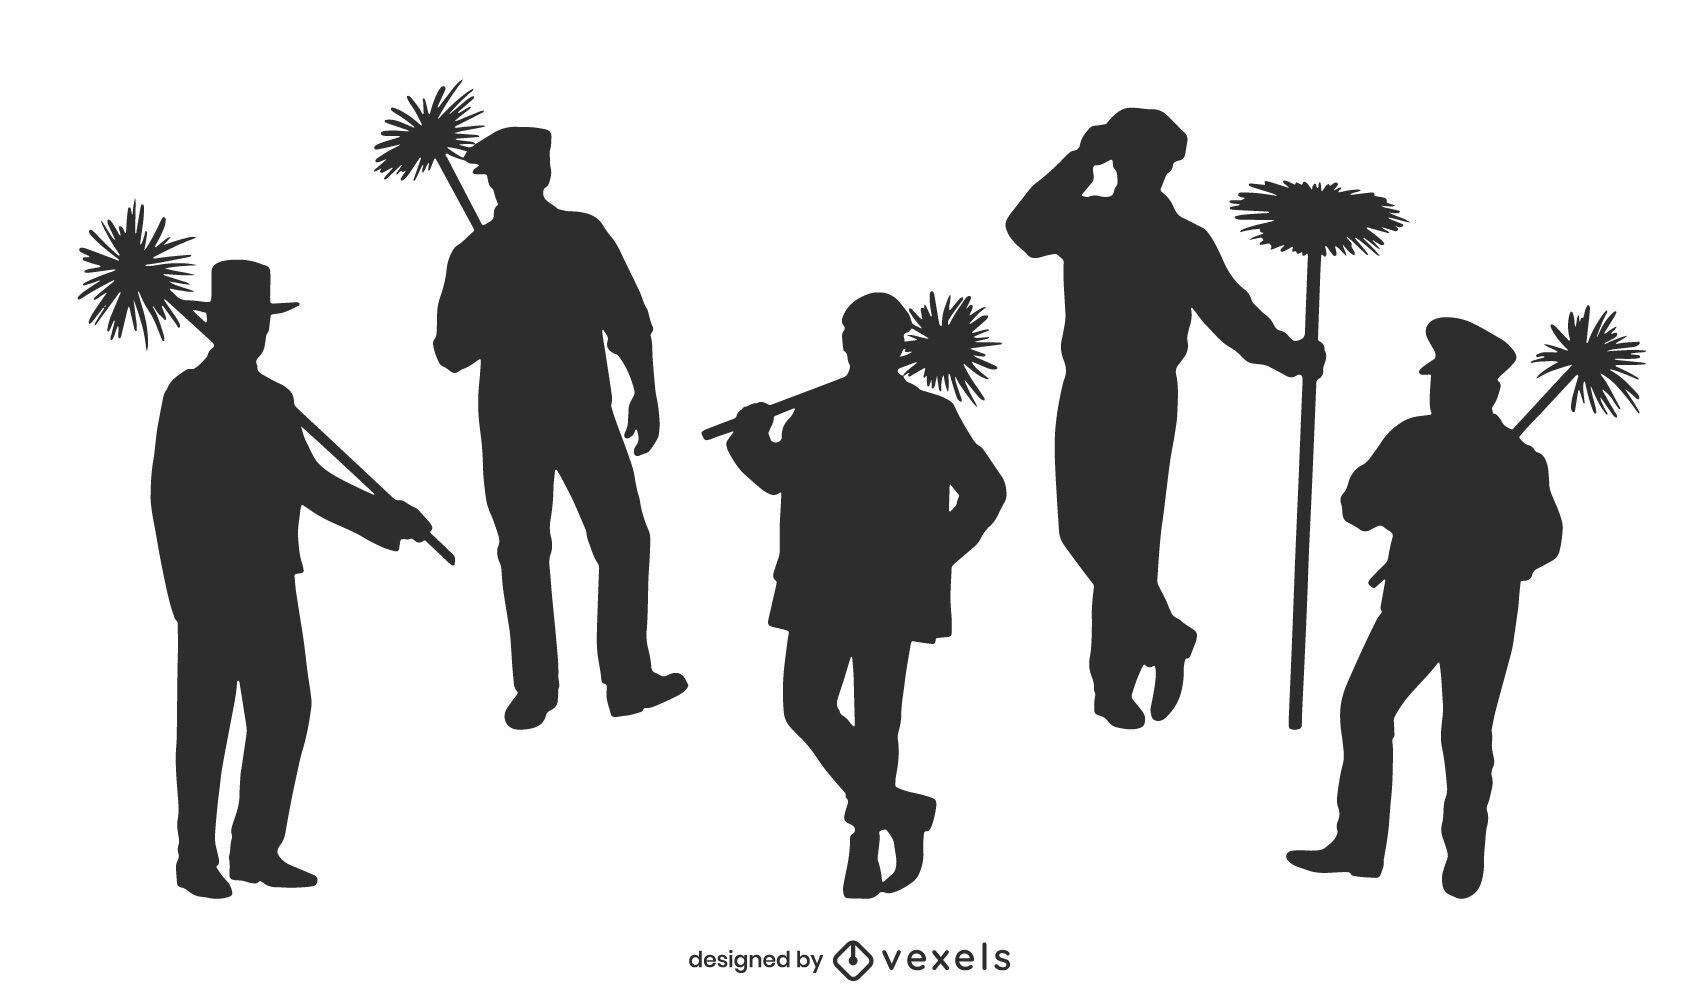 Chimney sweeper silhouette set